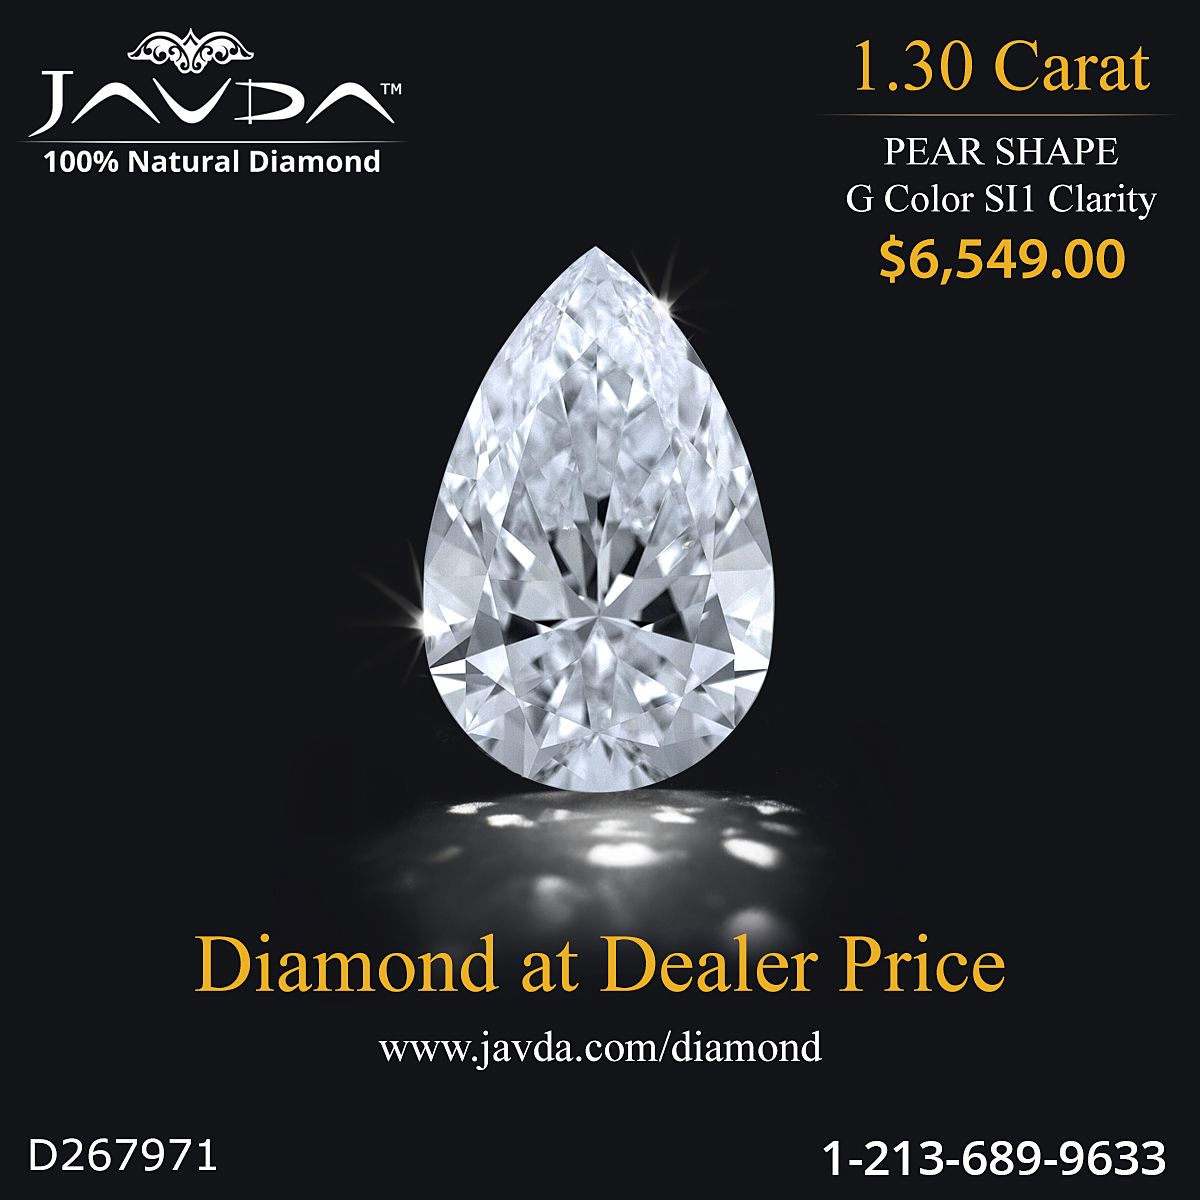 Pear Shape Diamond Certified By Gia 100 Natural G Color Si1 Clarity 1 30 Ct Total Weight Diamond Loose Diamonds Pear Shaped Diamond